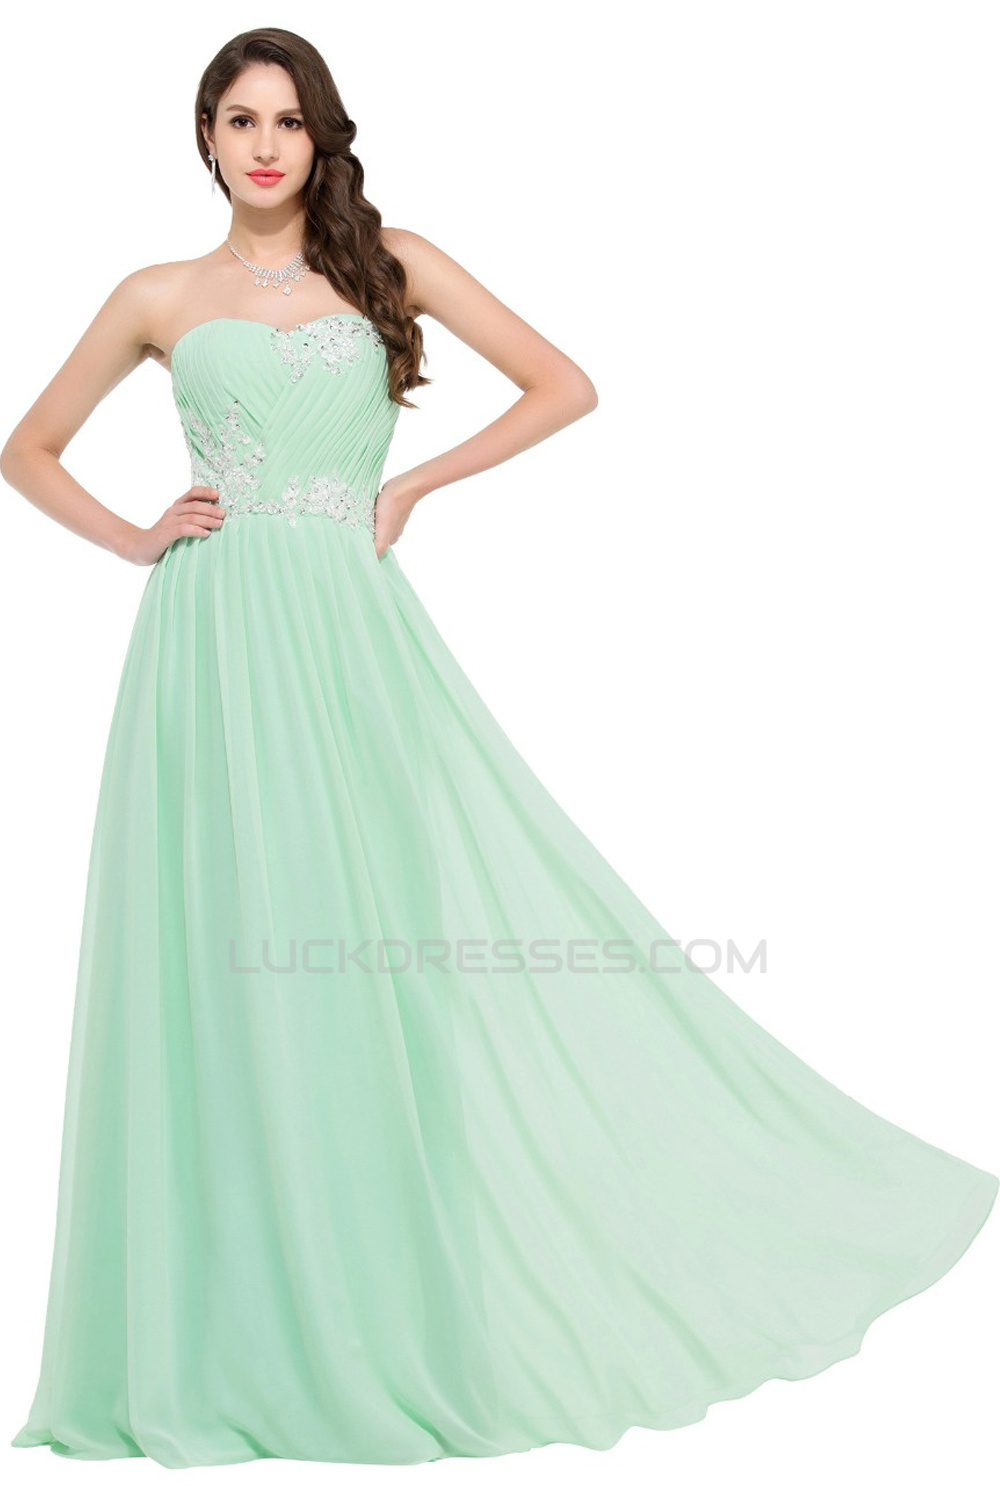 Green Chiffon Sweetheart Dress